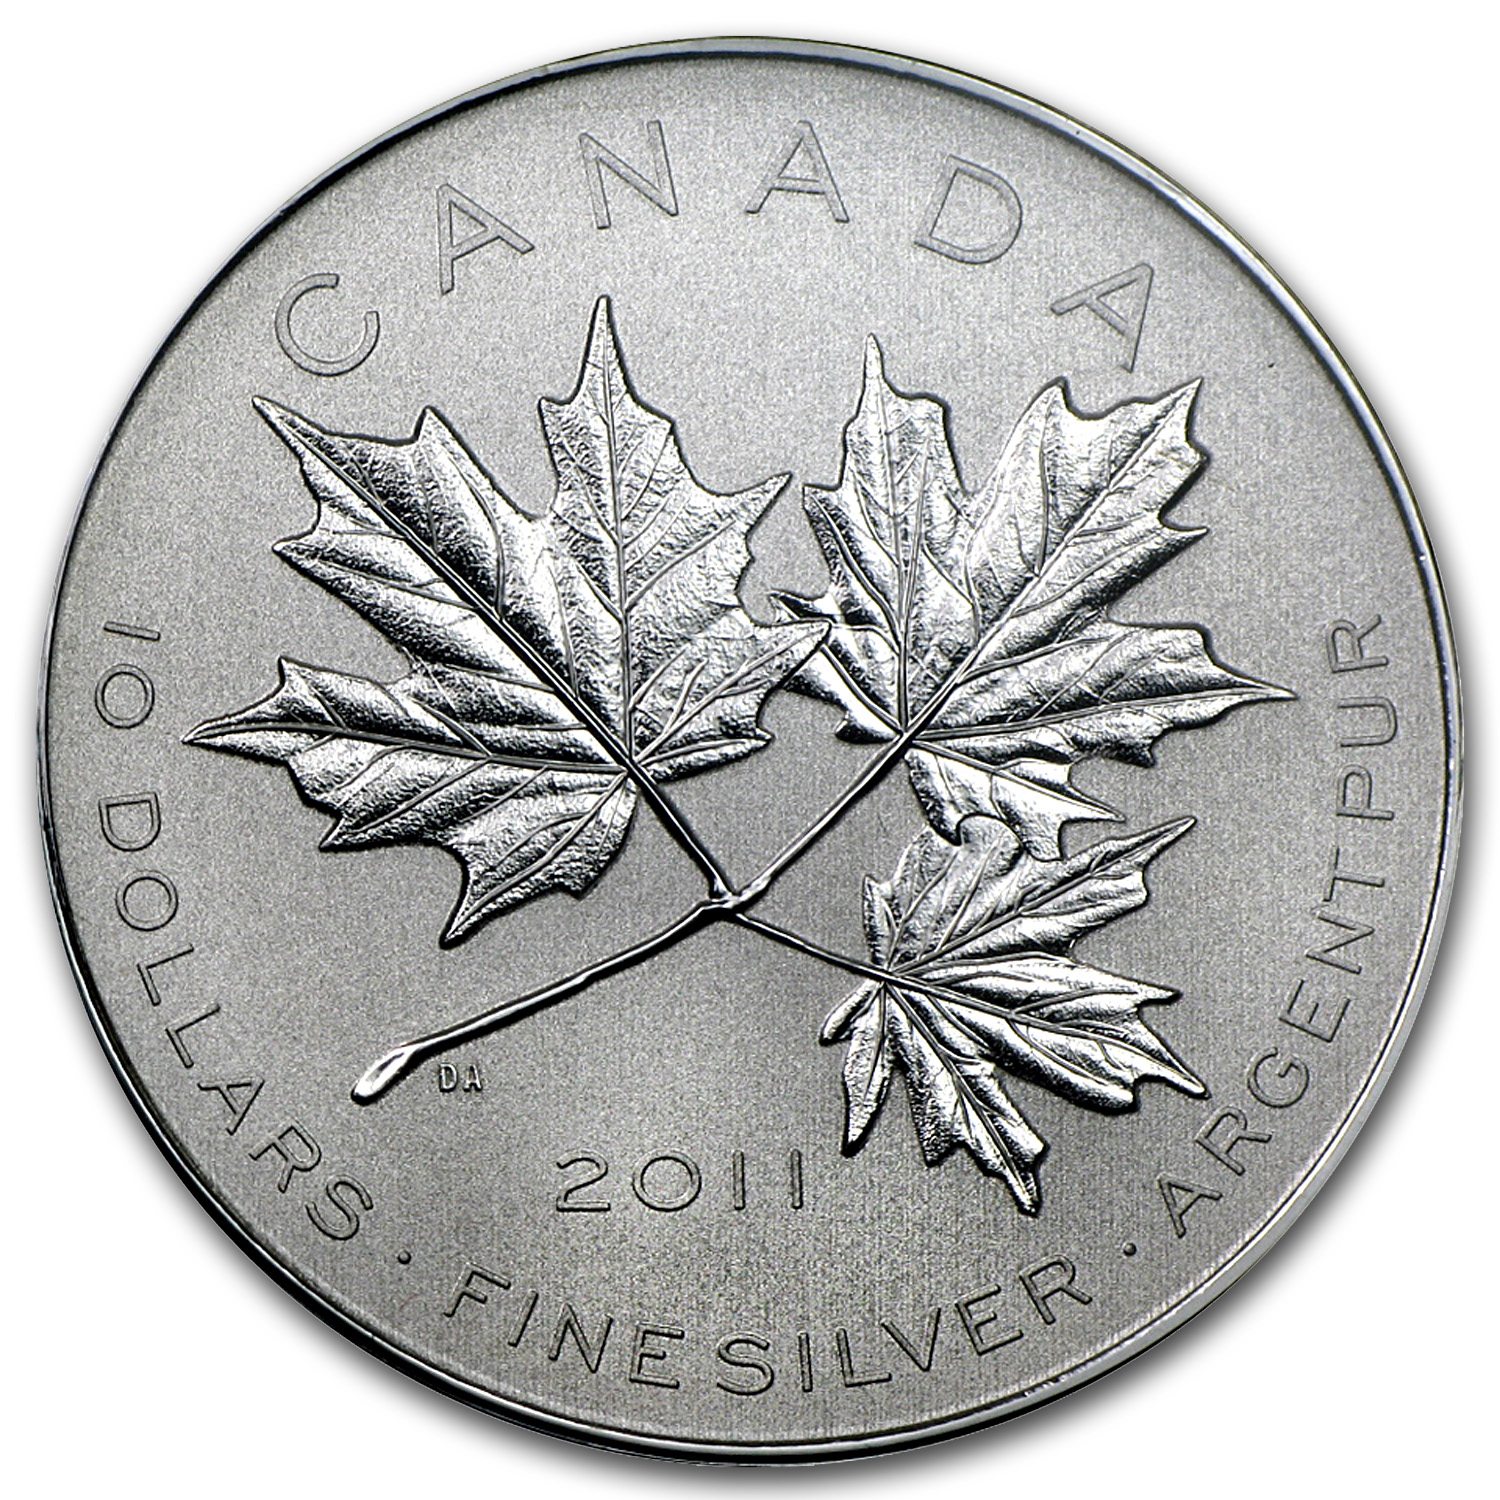 2011 Canada 1/2 oz Silver $10 Maple Leaf Forever (w/Box & COA)